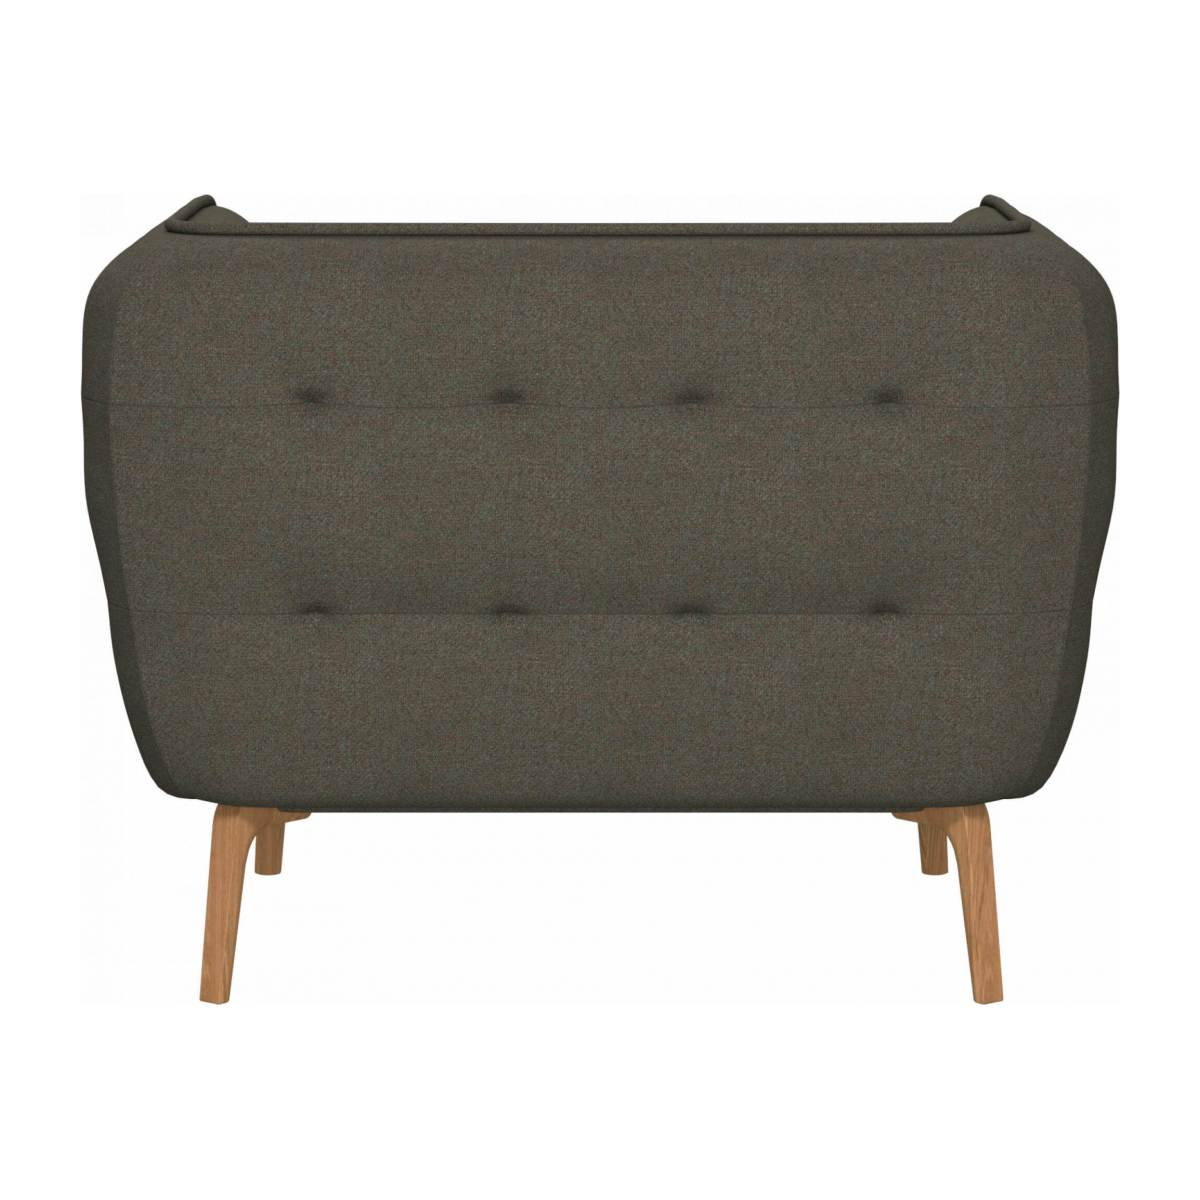 Armchair in Lecce fabric, slade grey and natural oak feet n°3